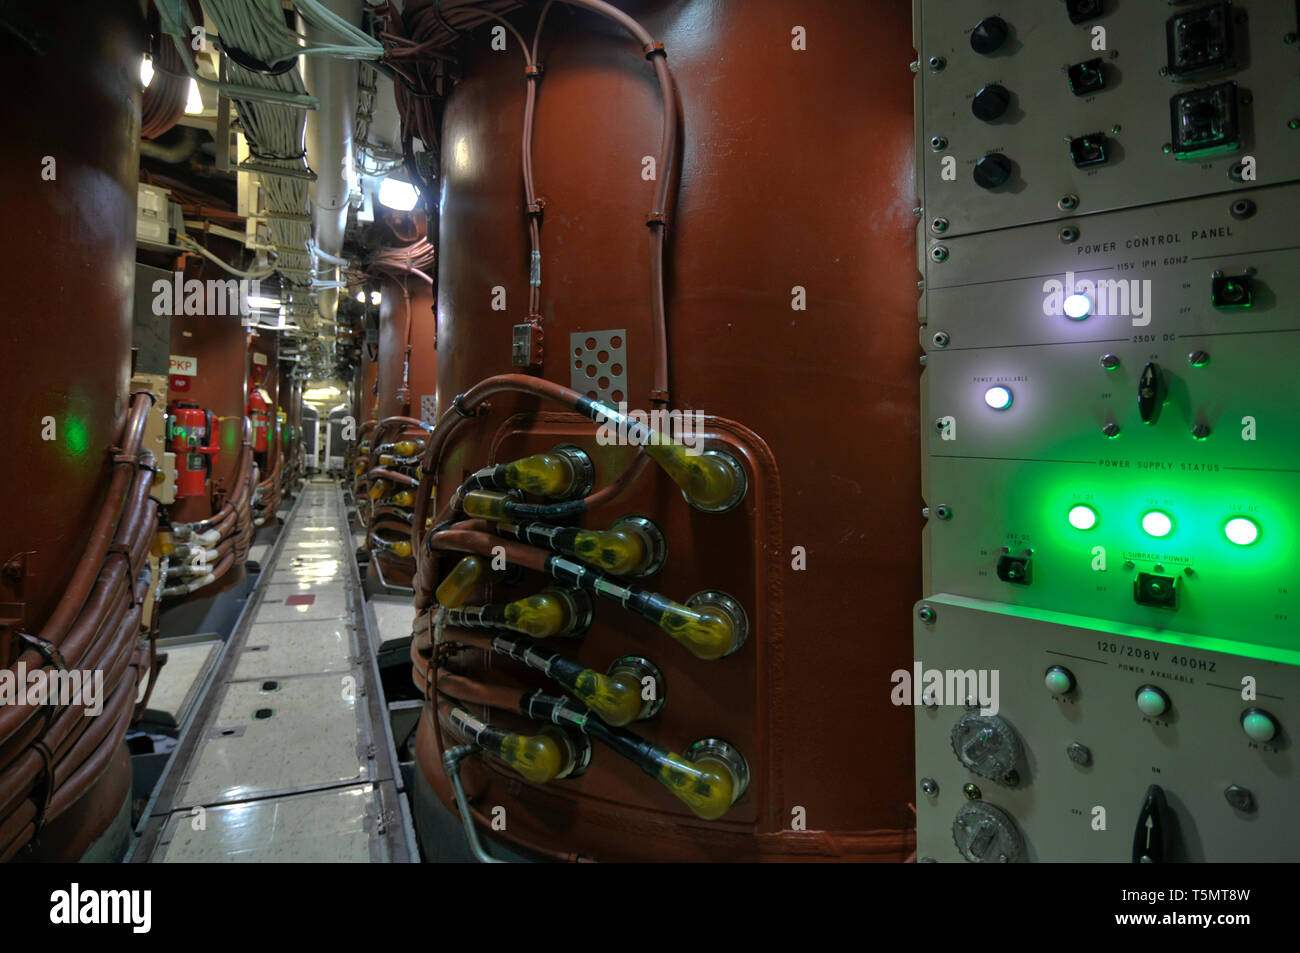 The missile silo room on the nuclear-powered fleet ballistic missile  submarine USS Ohio (SSBN-726/SSGN-726). - Stock Image